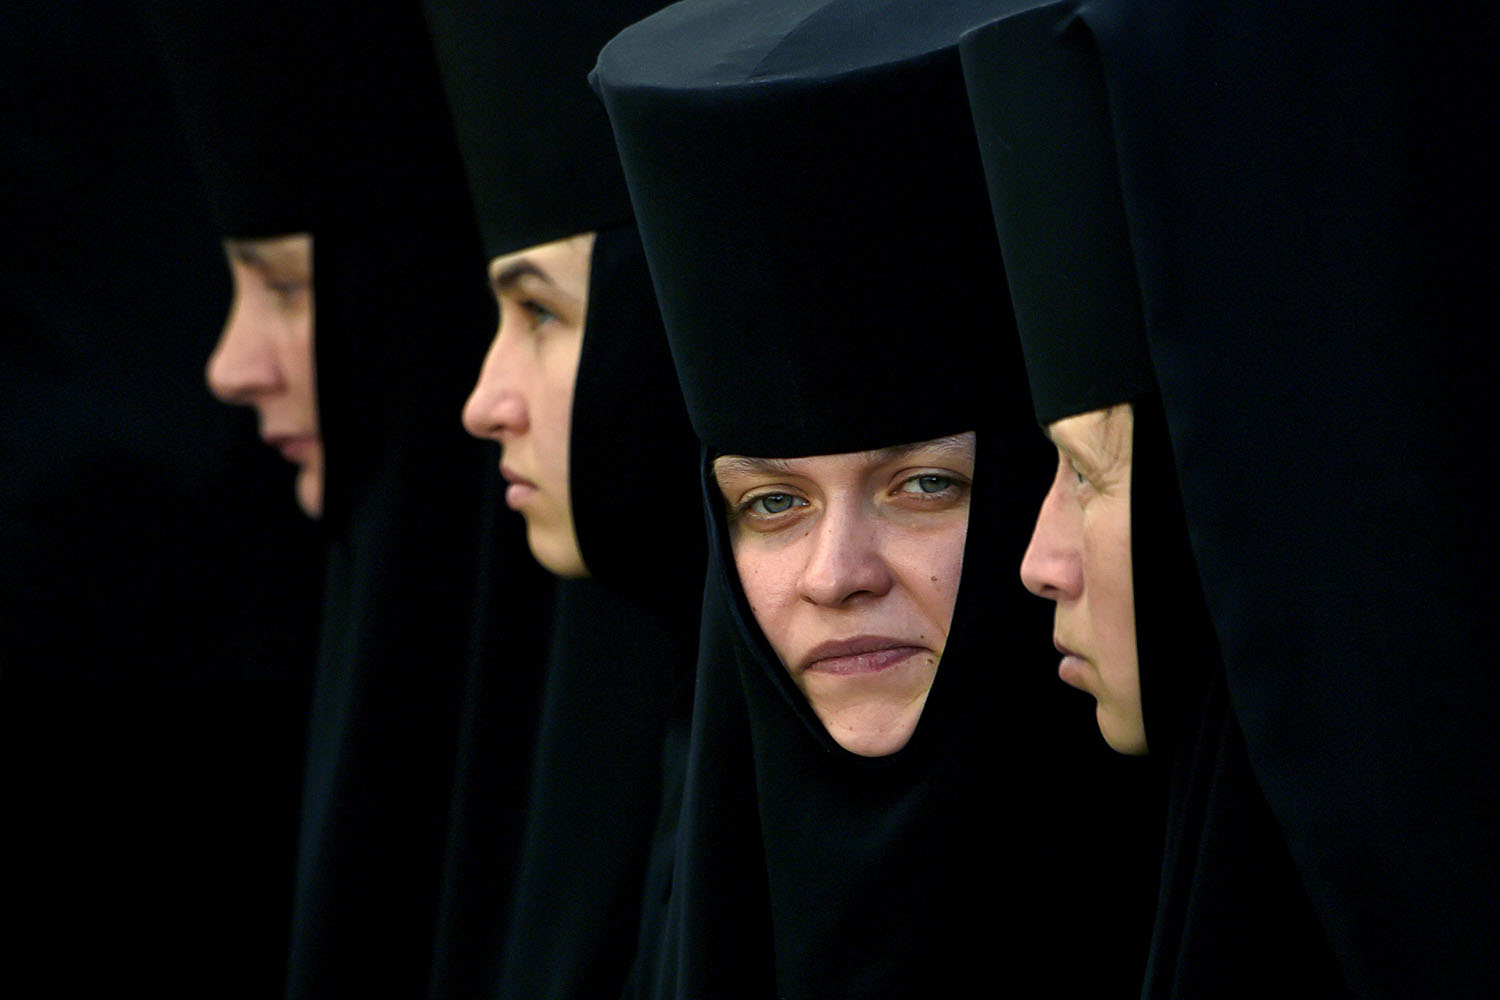 Orthodox nuns take part in a religious procession in Kyiv, Ukraine, on July 27. SERGEI SUPINSKY/AFP/Getty Images